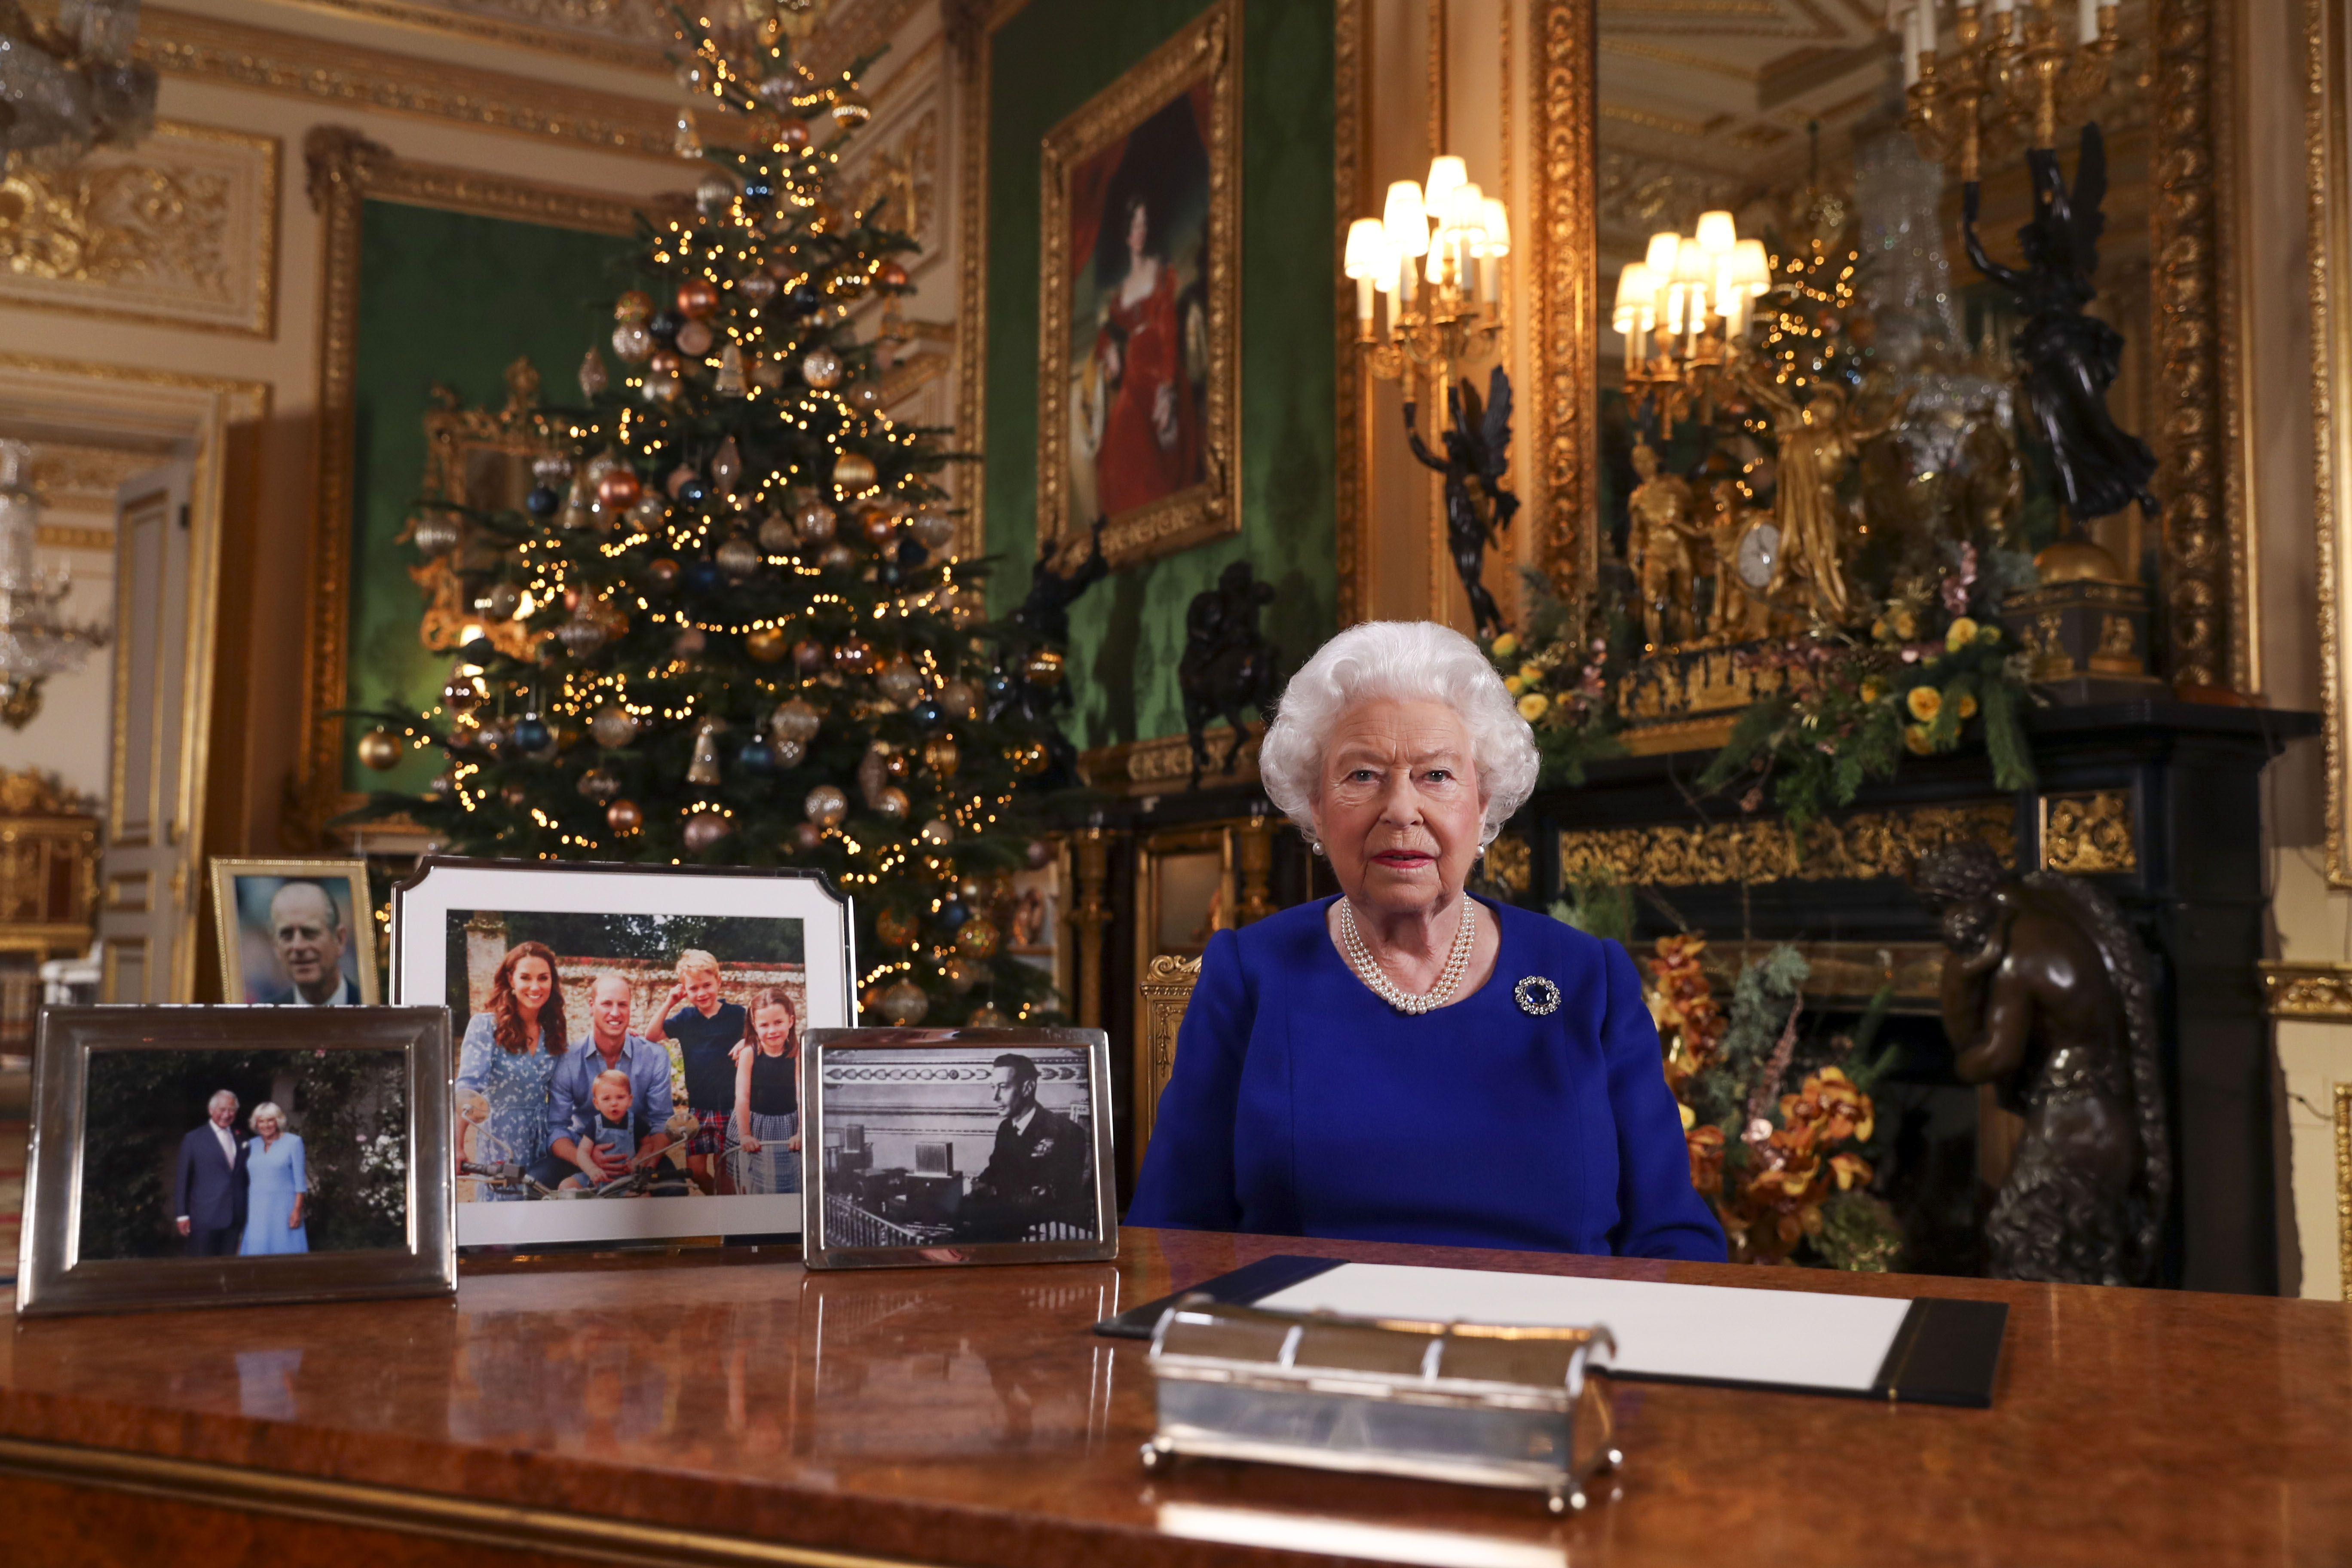 Queens Christmas Broadcast 2020 United States Harry and Meghan Absent from Queen's Christmas Address Photo